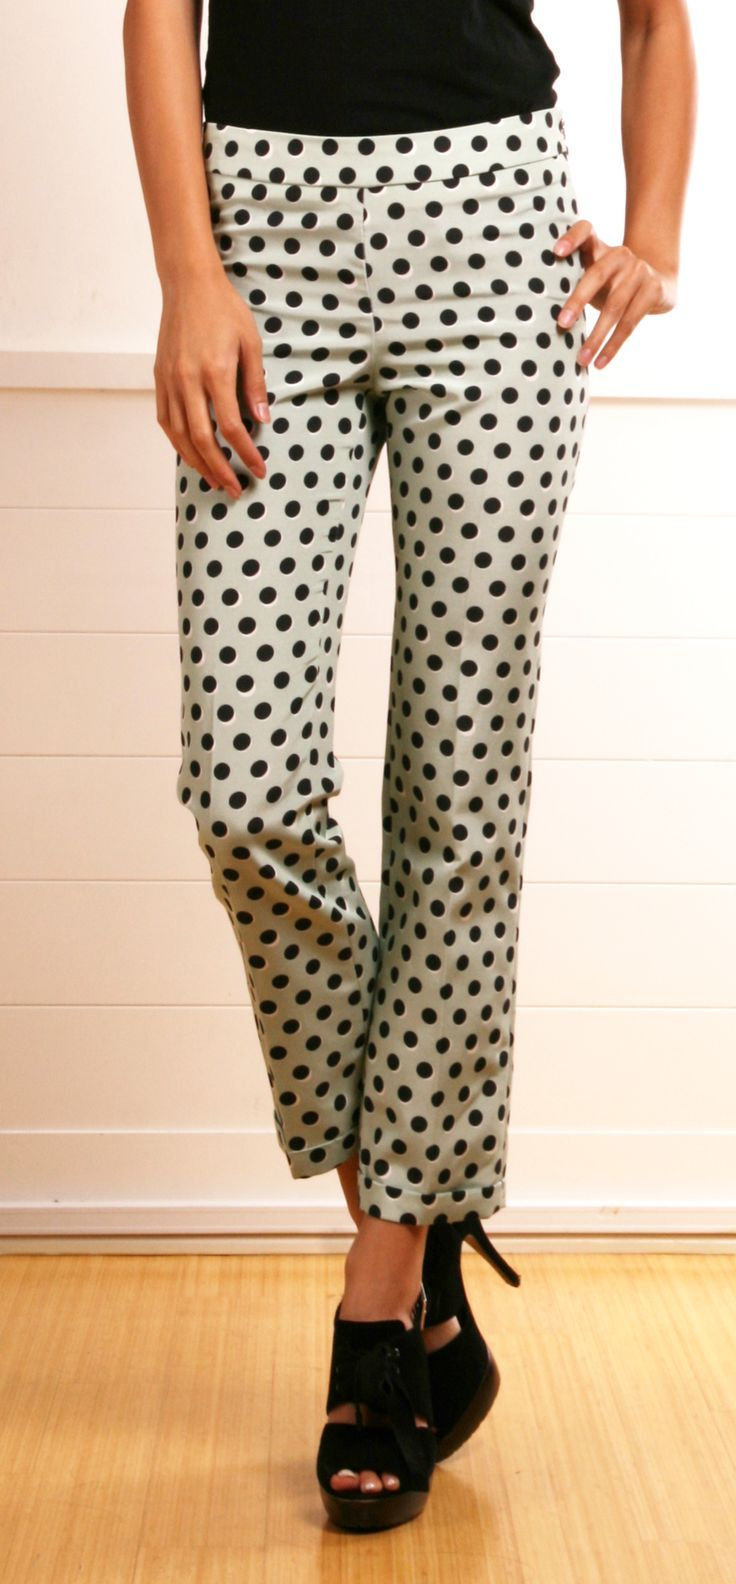 Looking for ankle length pants for spring - polka dots or geo patterns